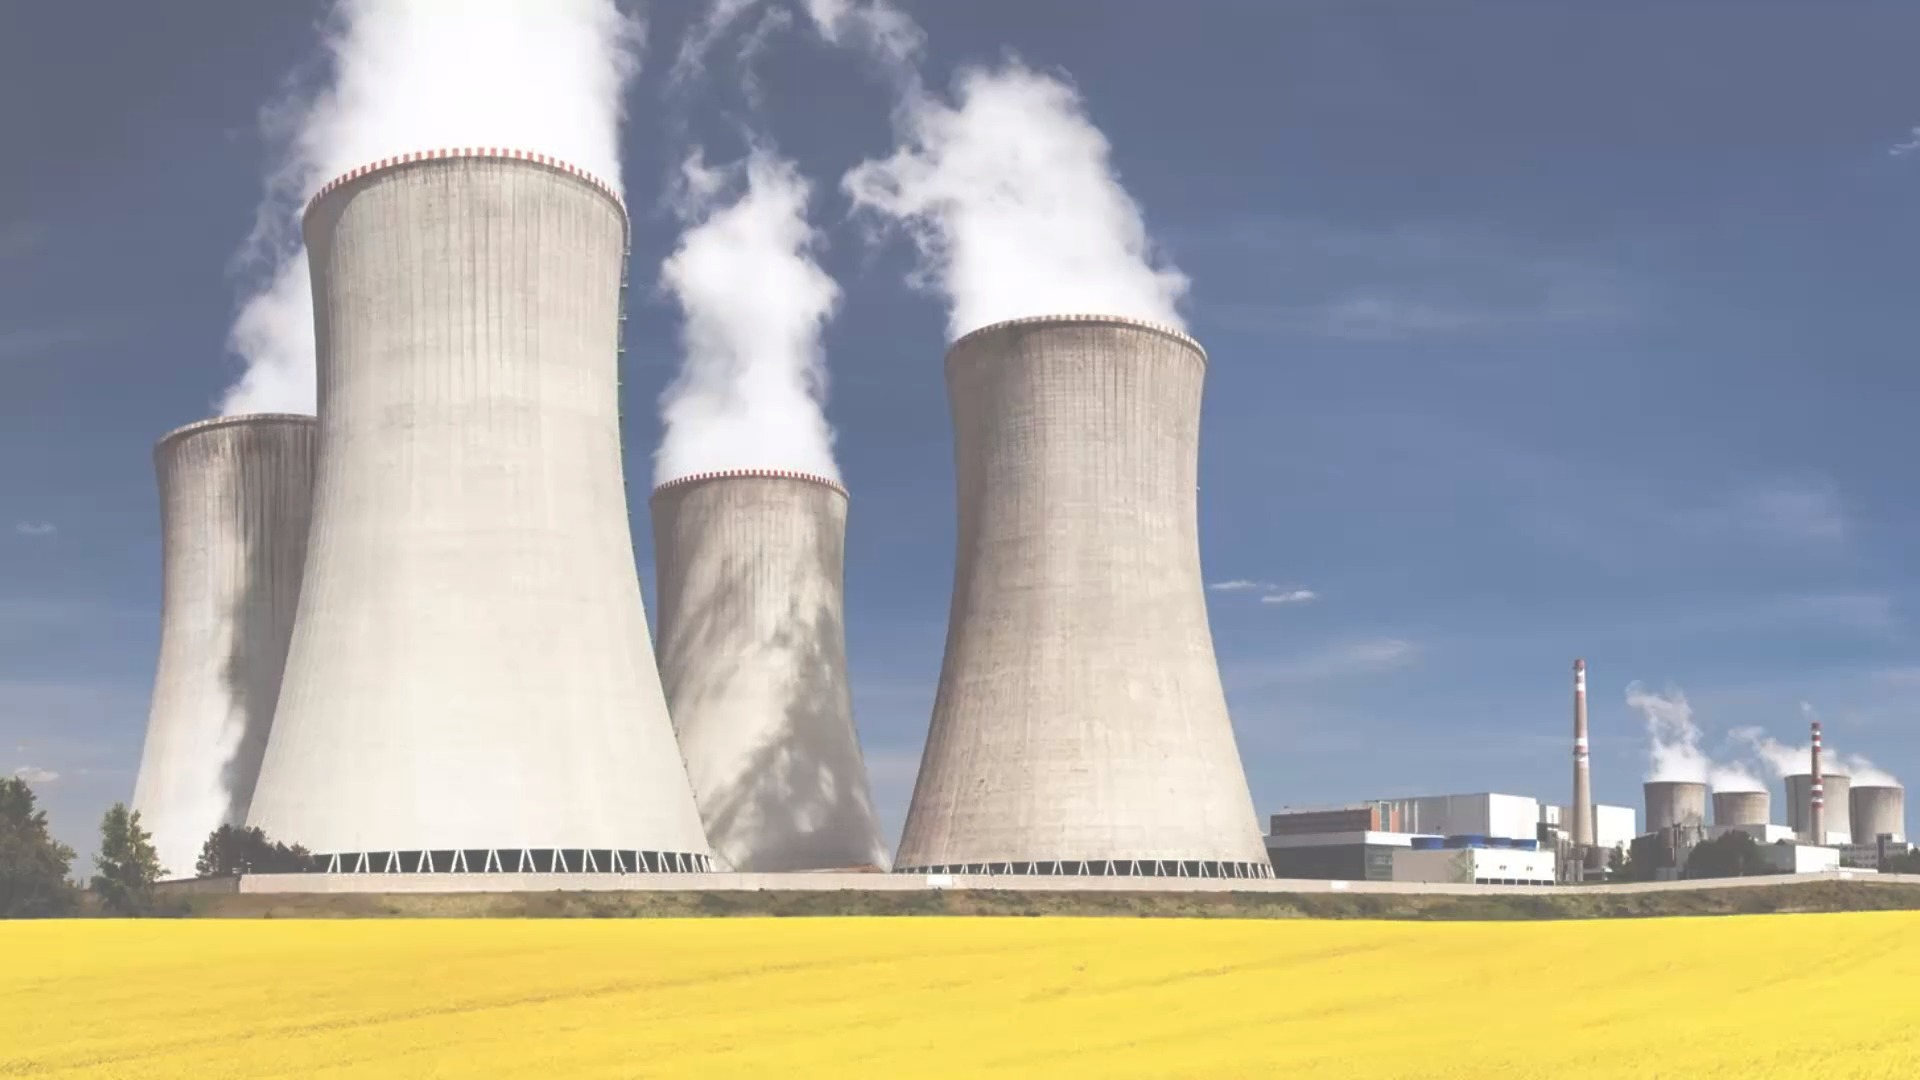 nuclear energy is the future Nuclear energy can be used to create electricity,  future of nuclear energy nuclear reactors use fission, or the splitting of atoms, to produce energy.